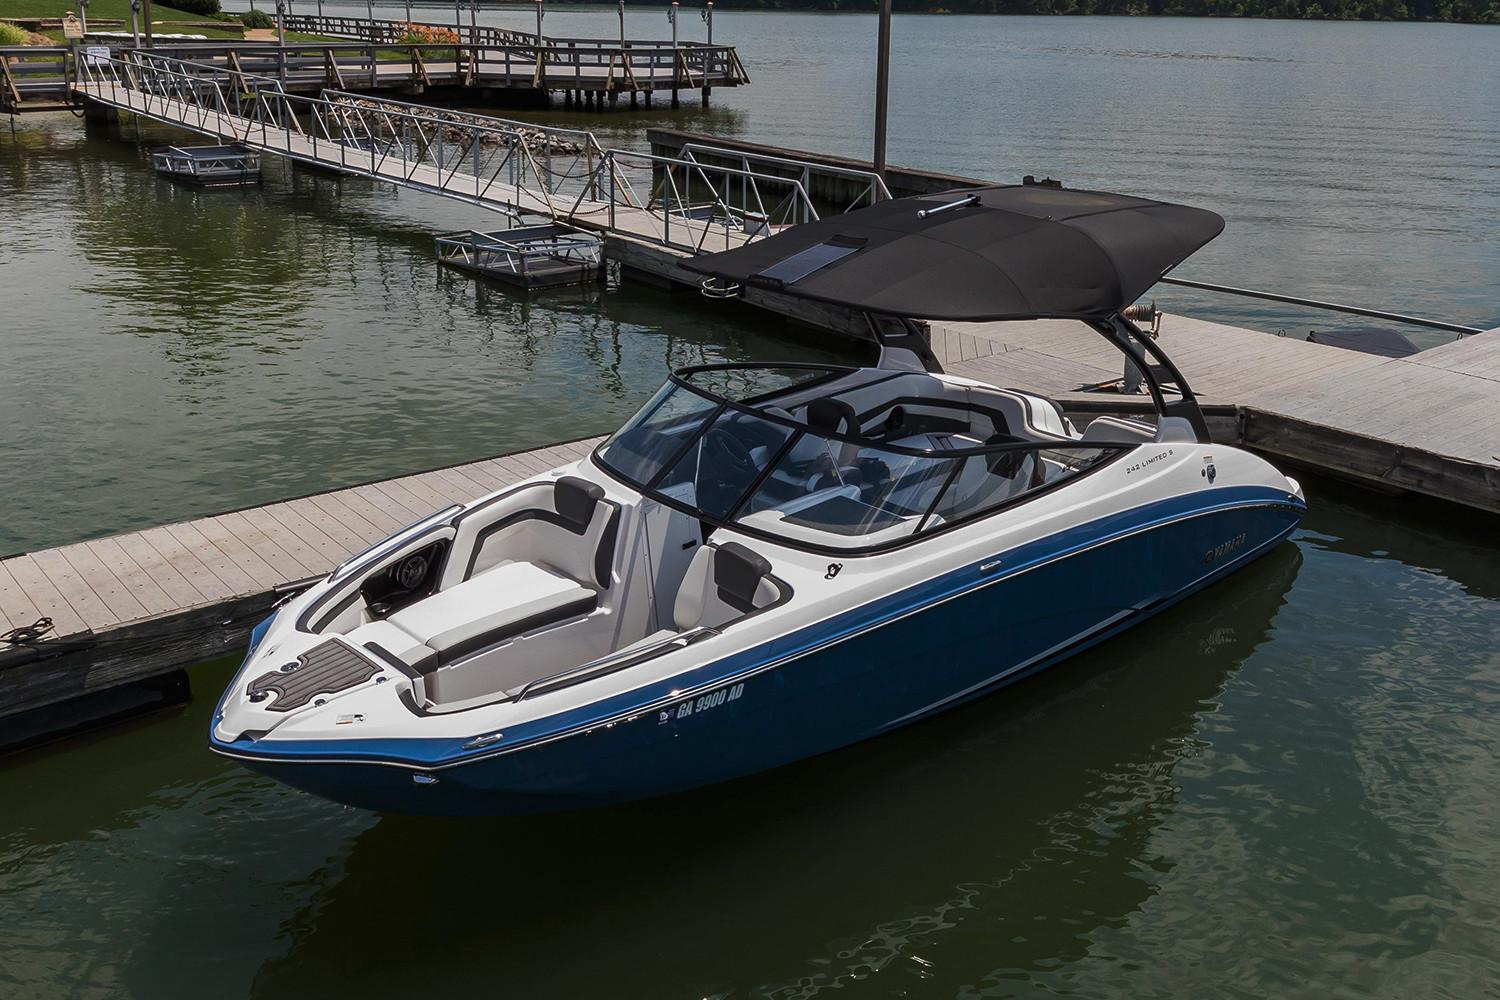 2018 Yamaha 242 Limited S E-Series in Miami, Florida